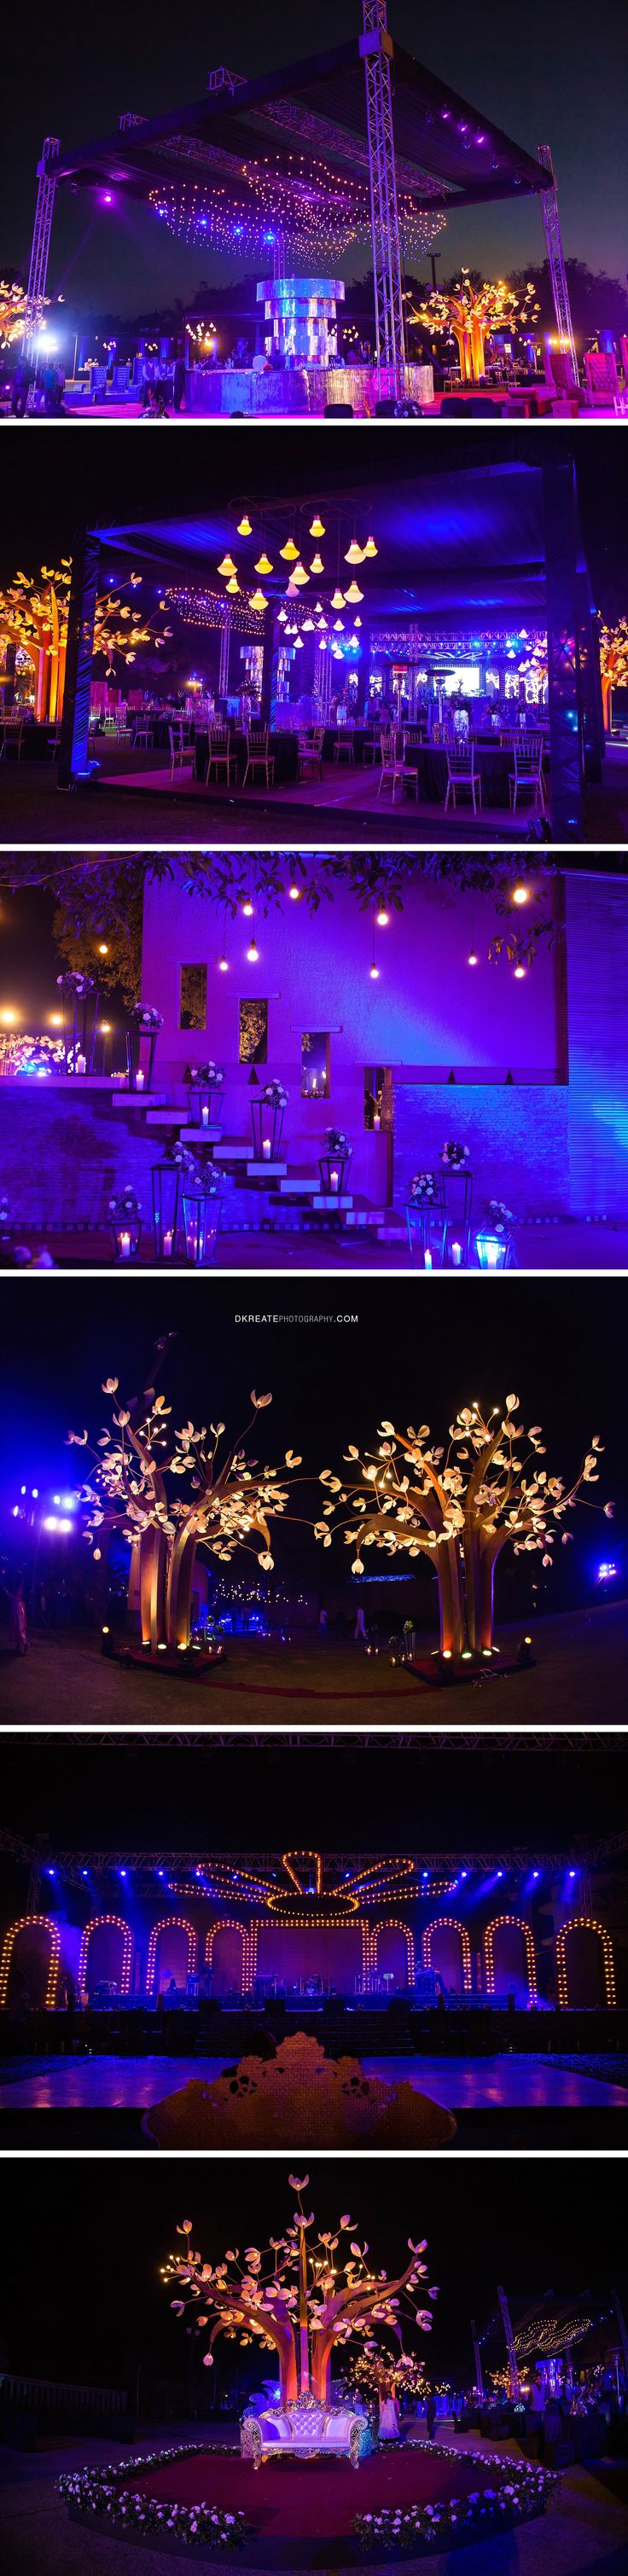 Indian Wedding Decor Inspiration | Grand Cocktail Sangeet Decor. Light tree. Big performance stage. Stage for the brie and groom. Fresh flower, lanterns, Candles, Bar decor inspiration. Big Fat Indian Wedding Purple Pink Gold White #wedmegood #maharaniwedding #Bigfatsouthasainwedding